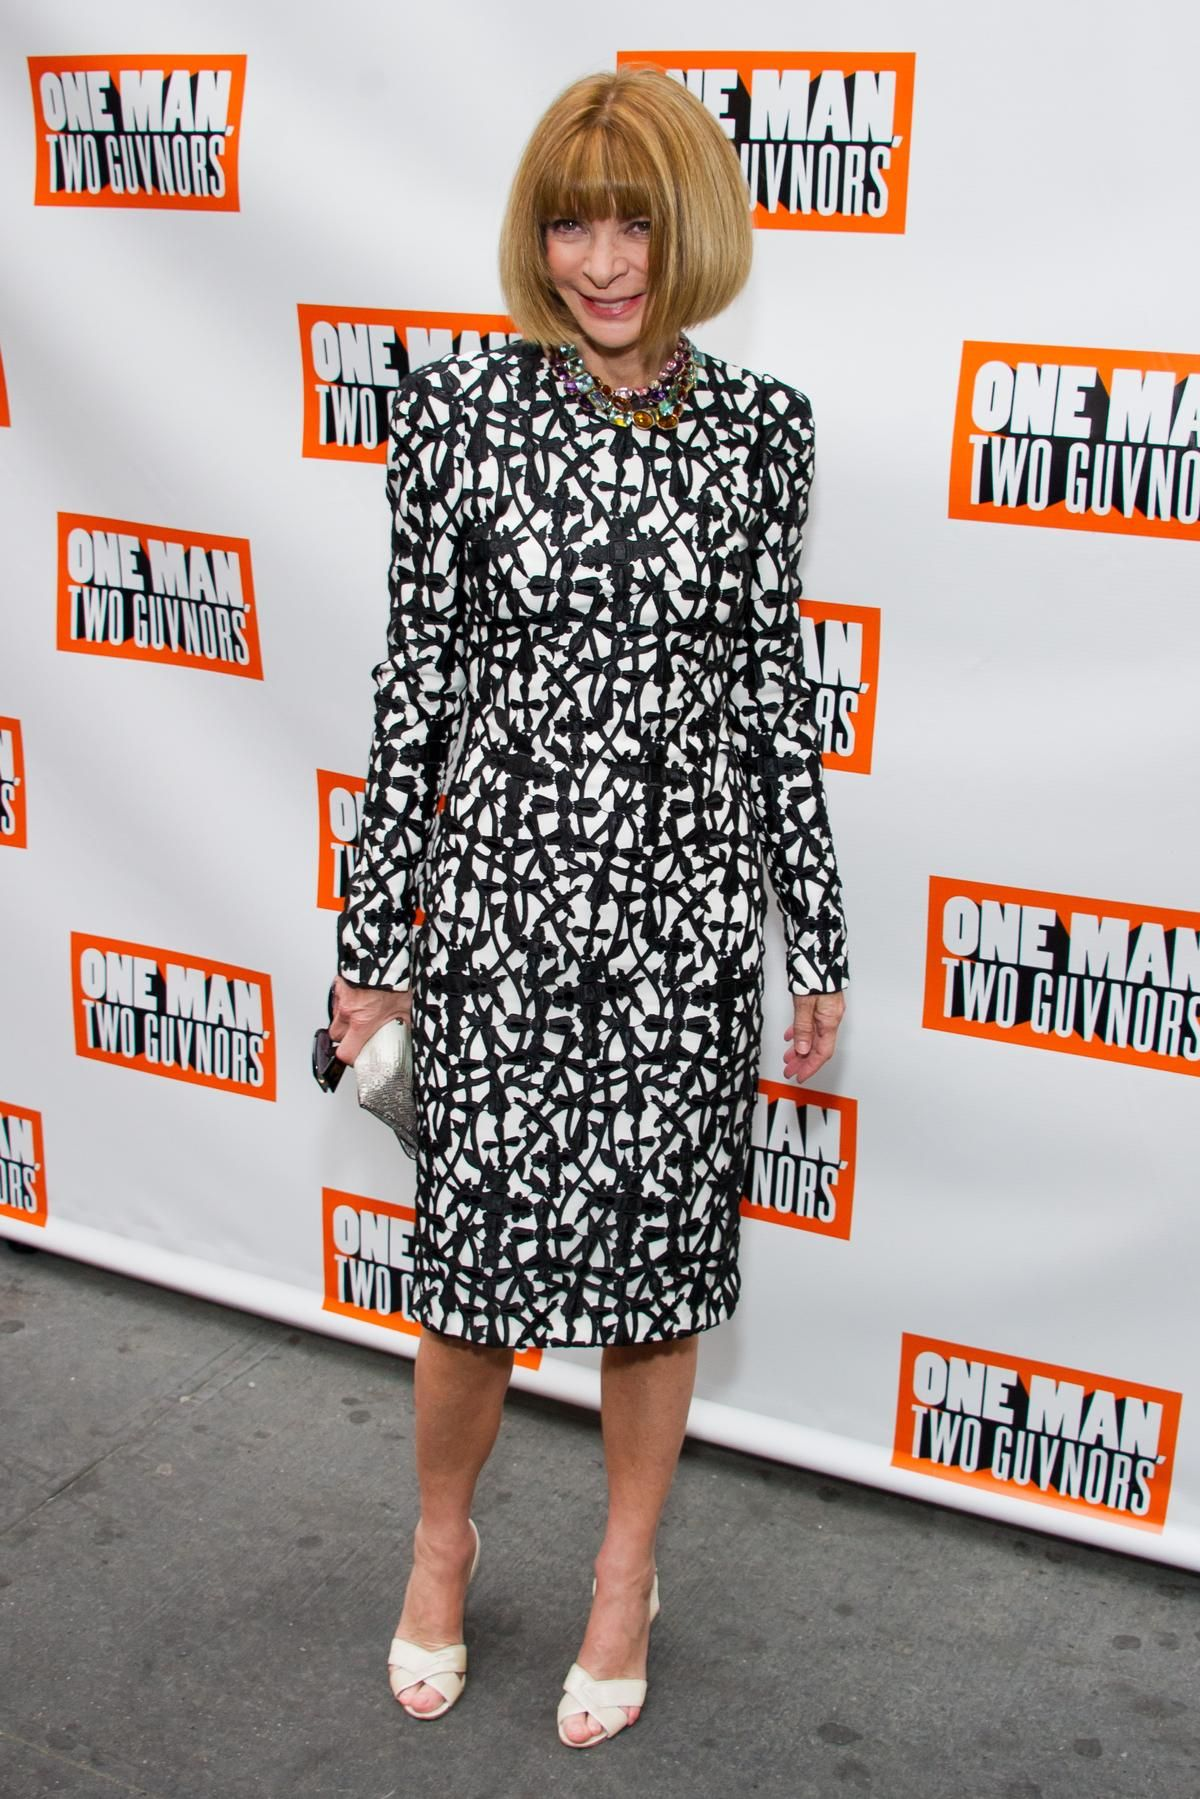 Anna Wintour at the opening of One Man, Two Guvnors in New York.